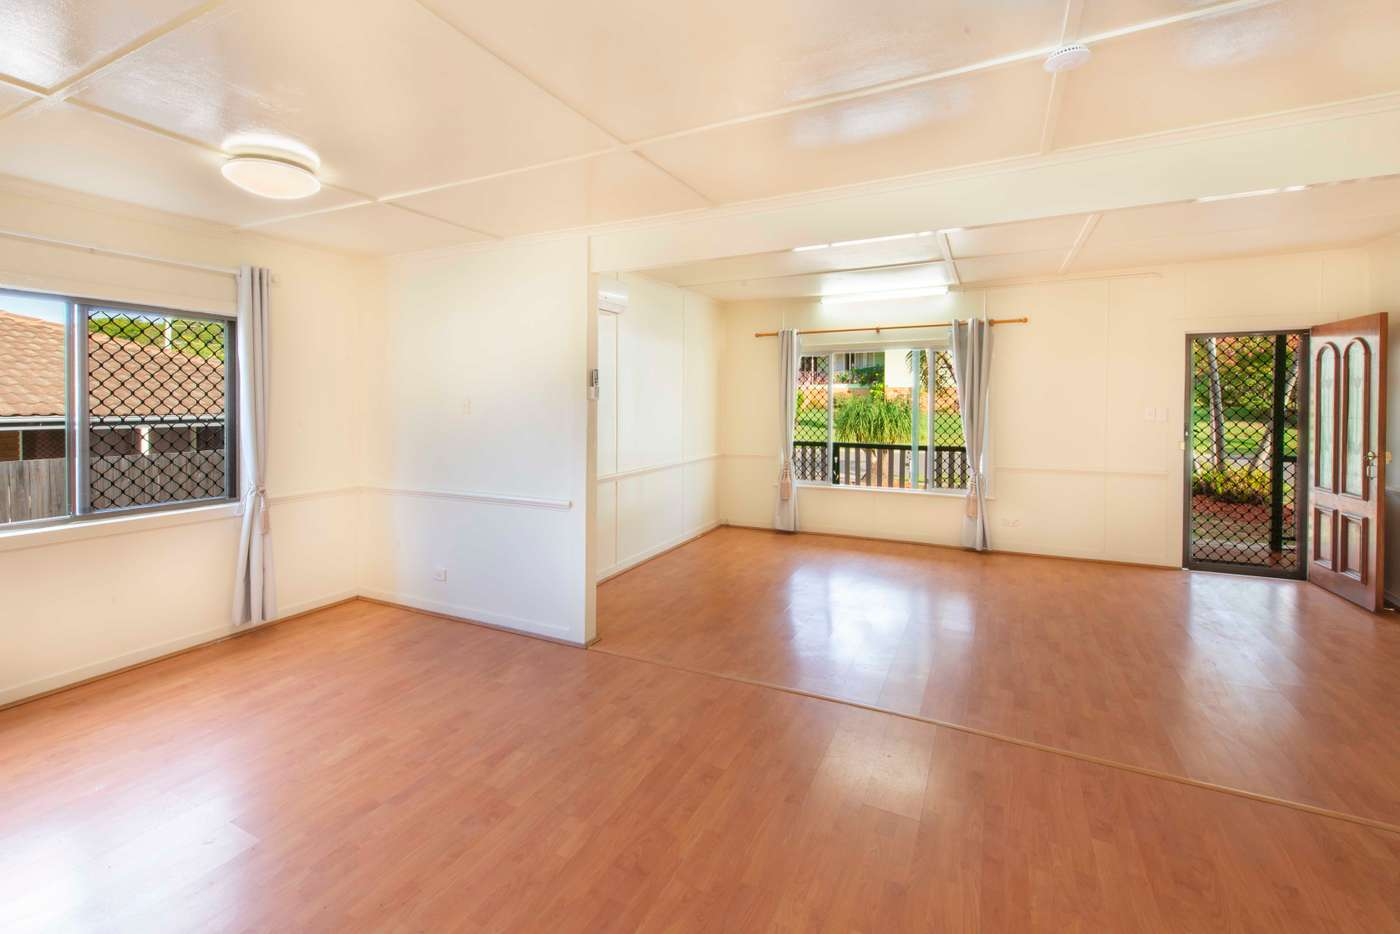 Fifth view of Homely house listing, 46 Marlene Street, Mount Gravatt East QLD 4122